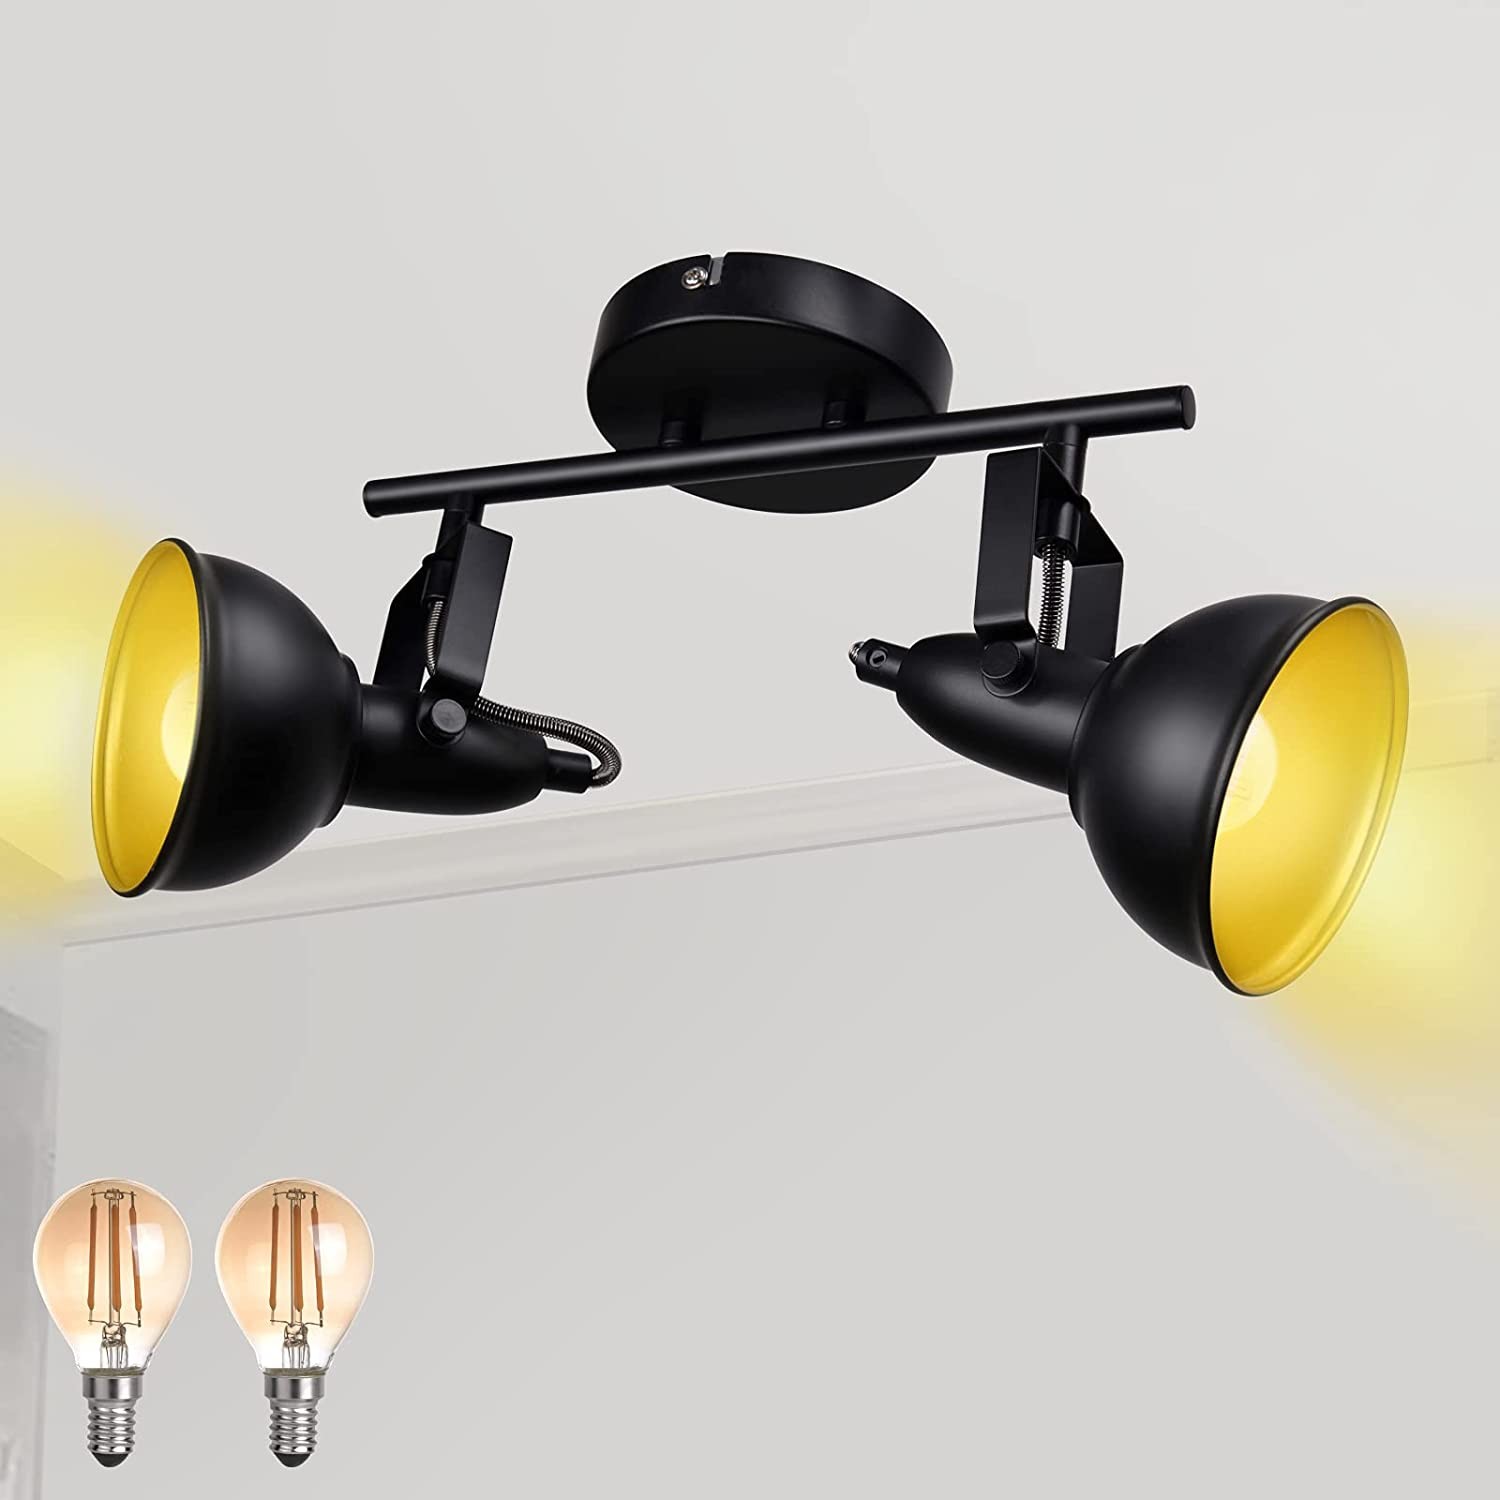 HiBay Retro Track Sale price Lighting Fixtures LED Ceiling L Recommended Black 2-Light